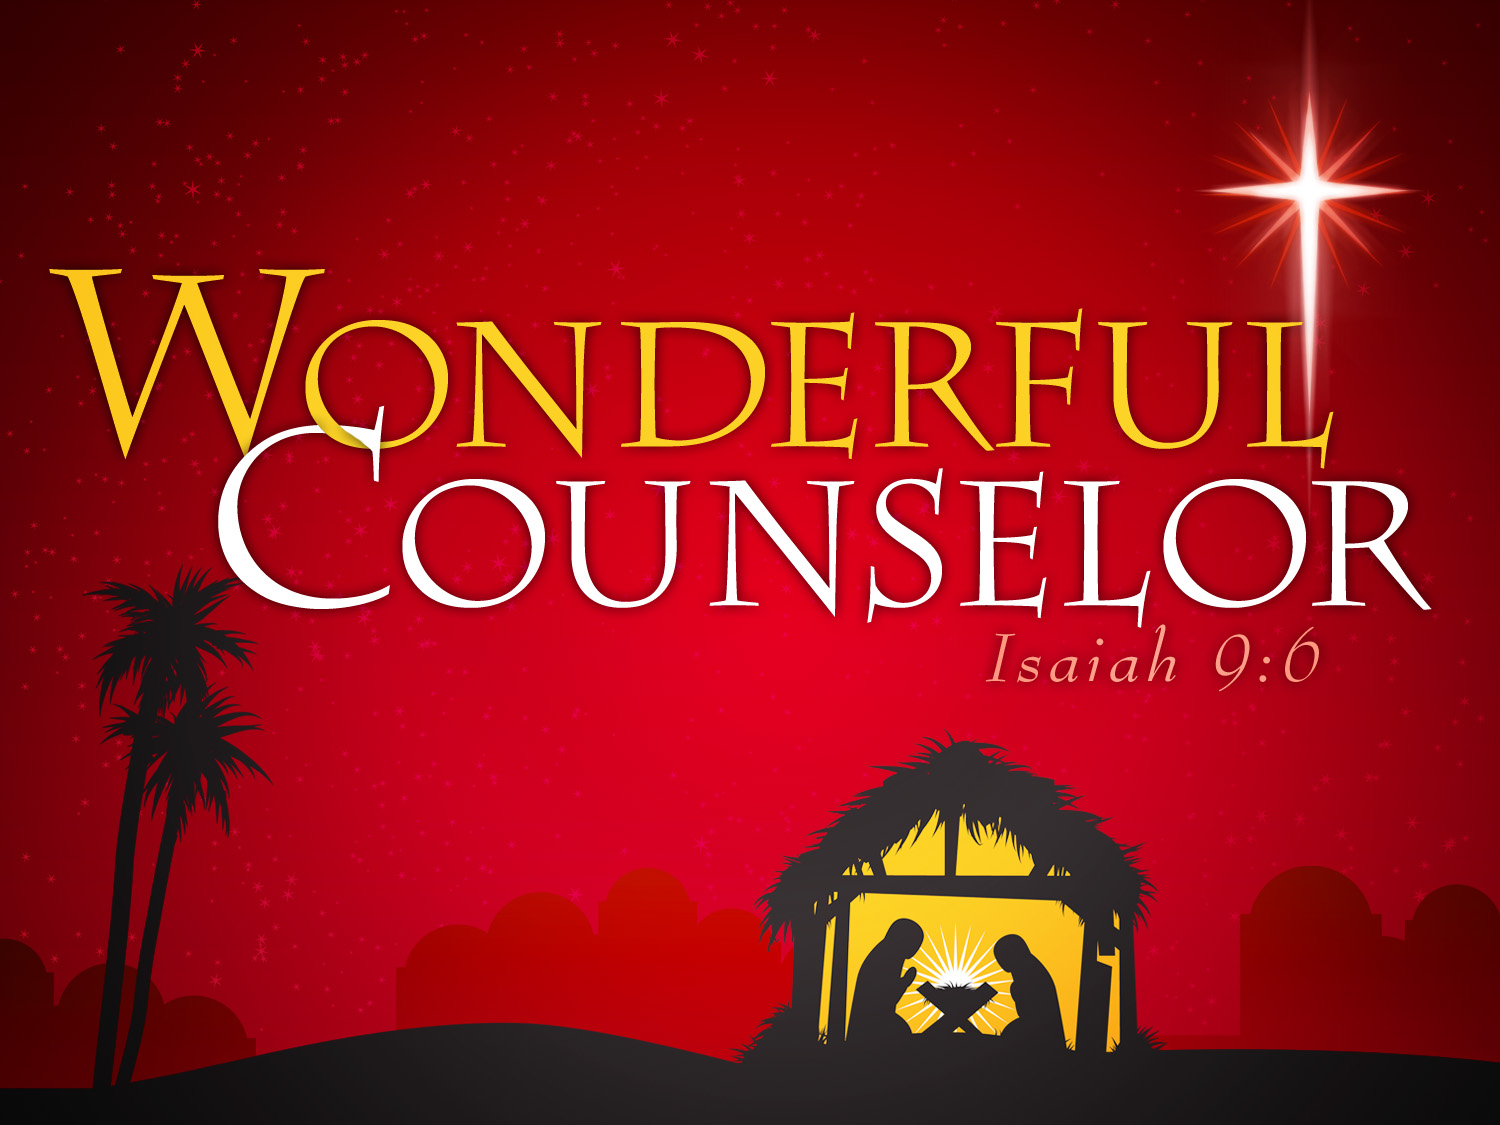 Wonderful Counselor – Jesus is Hope